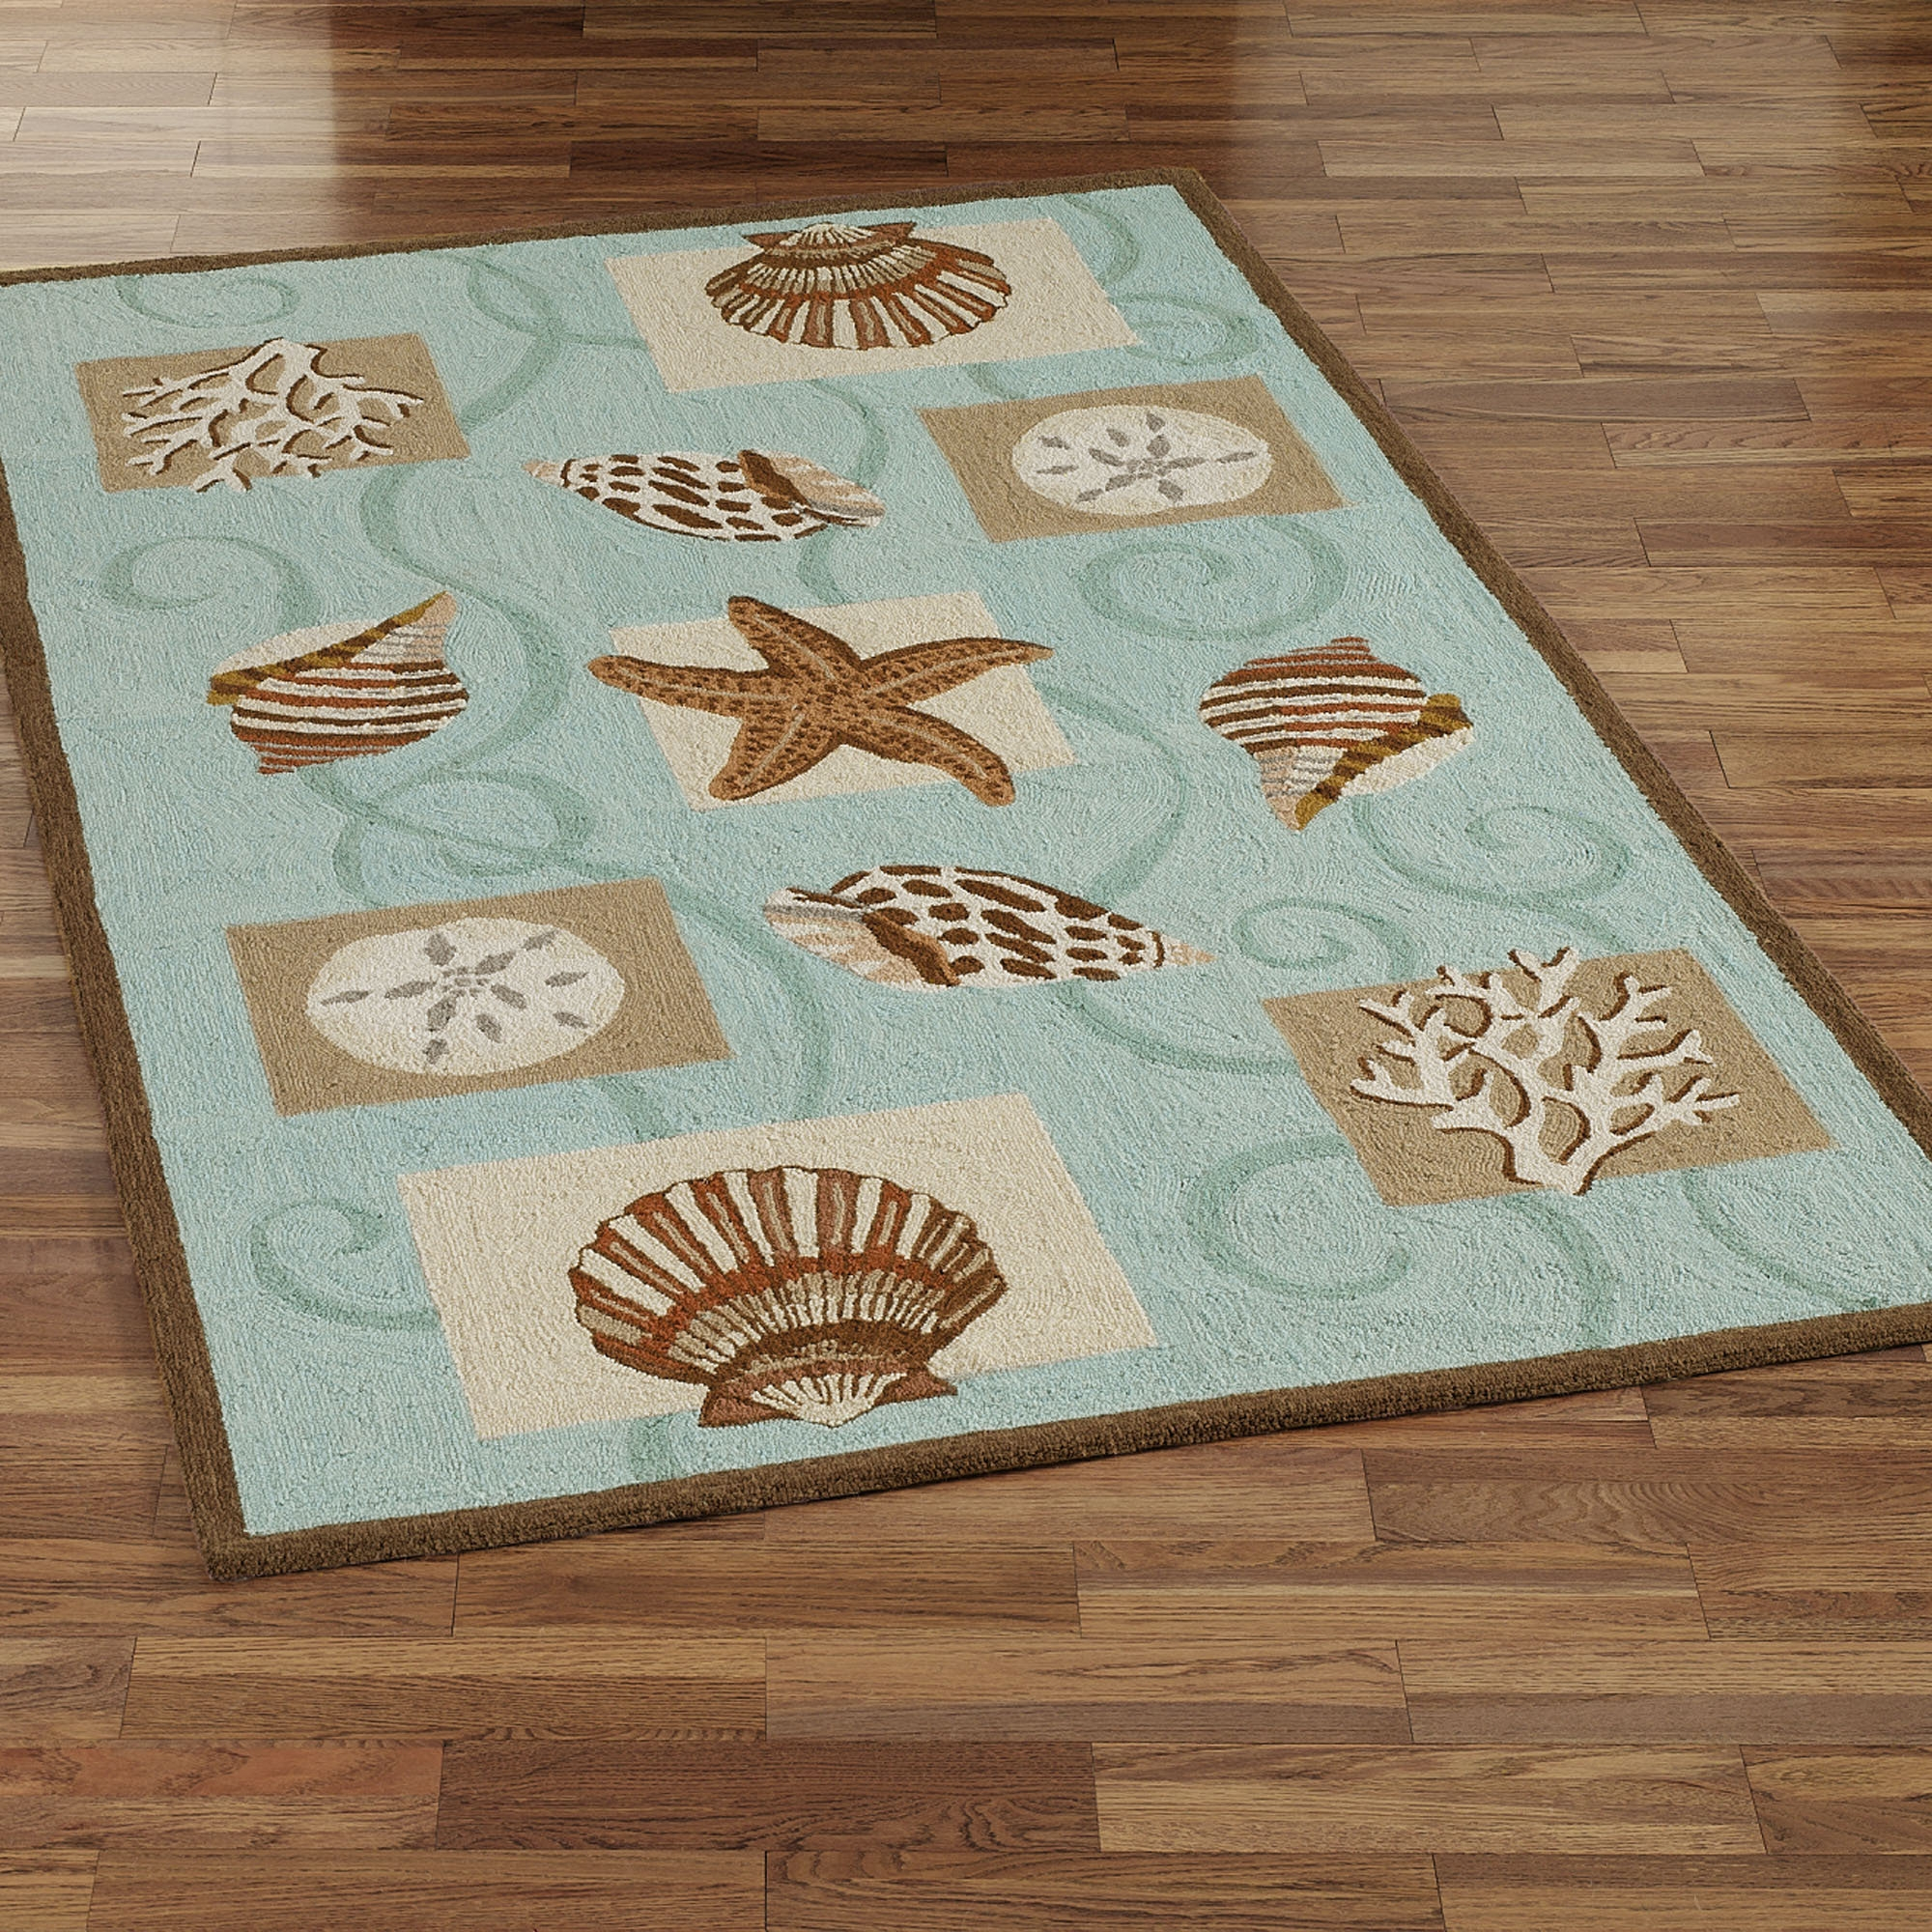 Home Ideas Design Inspiration Target: 20 Collection Of Rug Runners For Bathroom